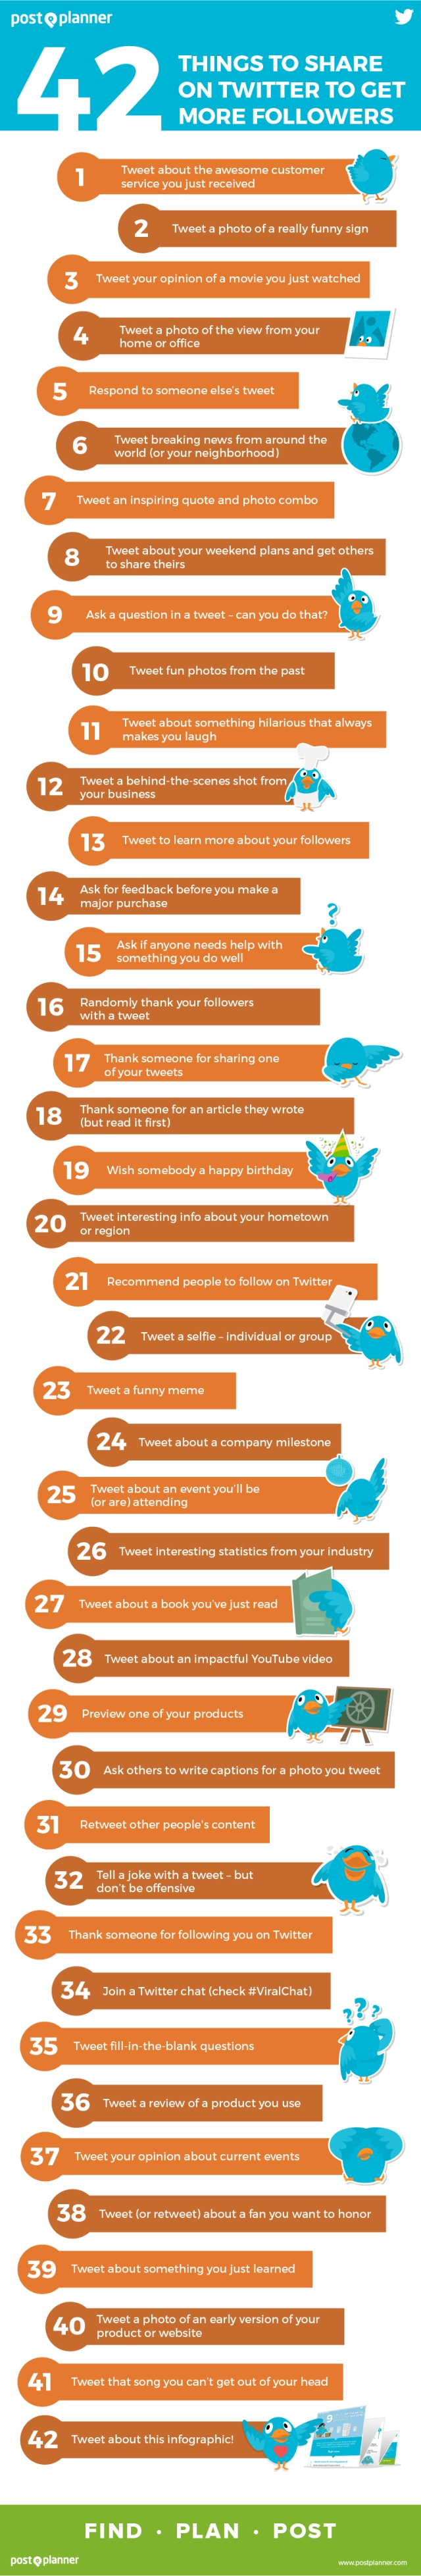 42 Things to Share on Twitter to Get More Valuable Followers